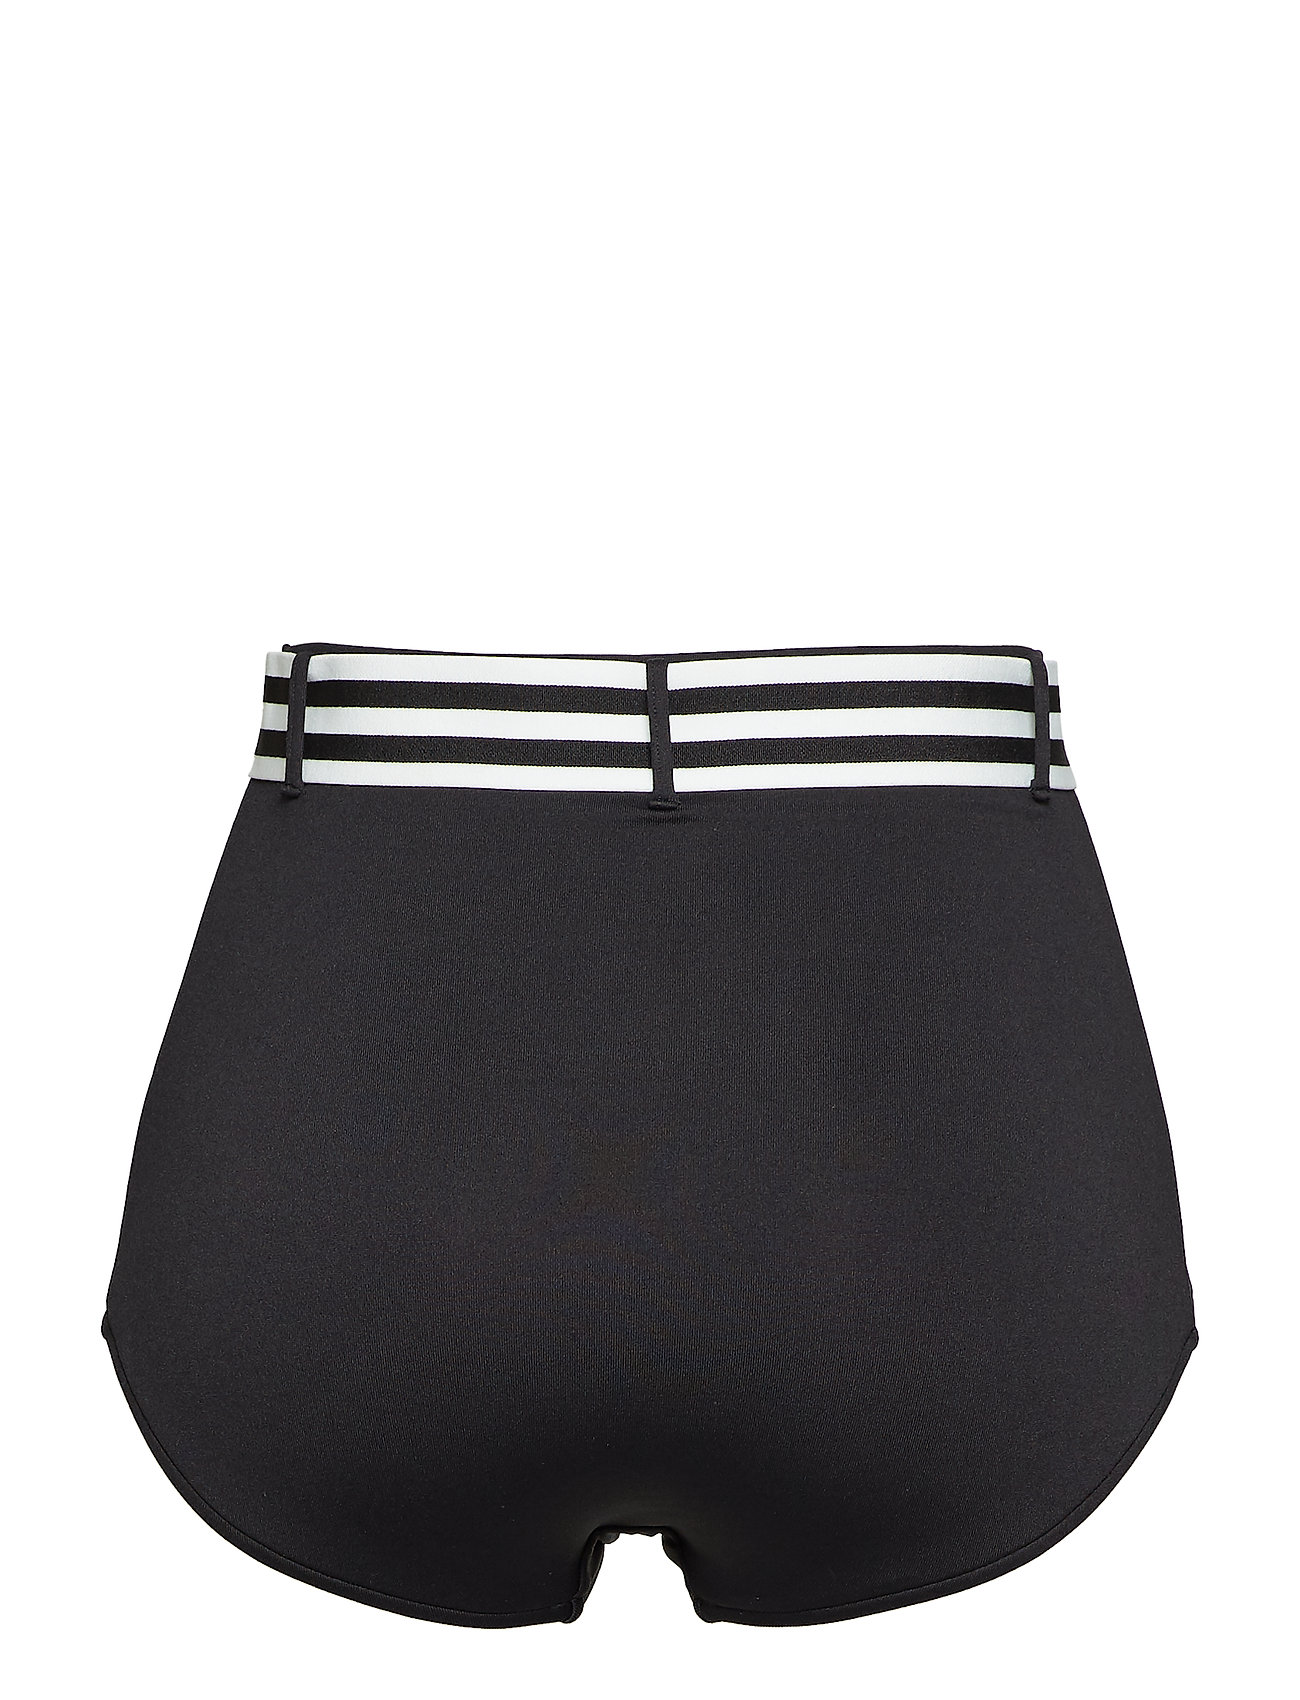 Seafolly    Belted High Waisted Pant  - Bademode    BLACK